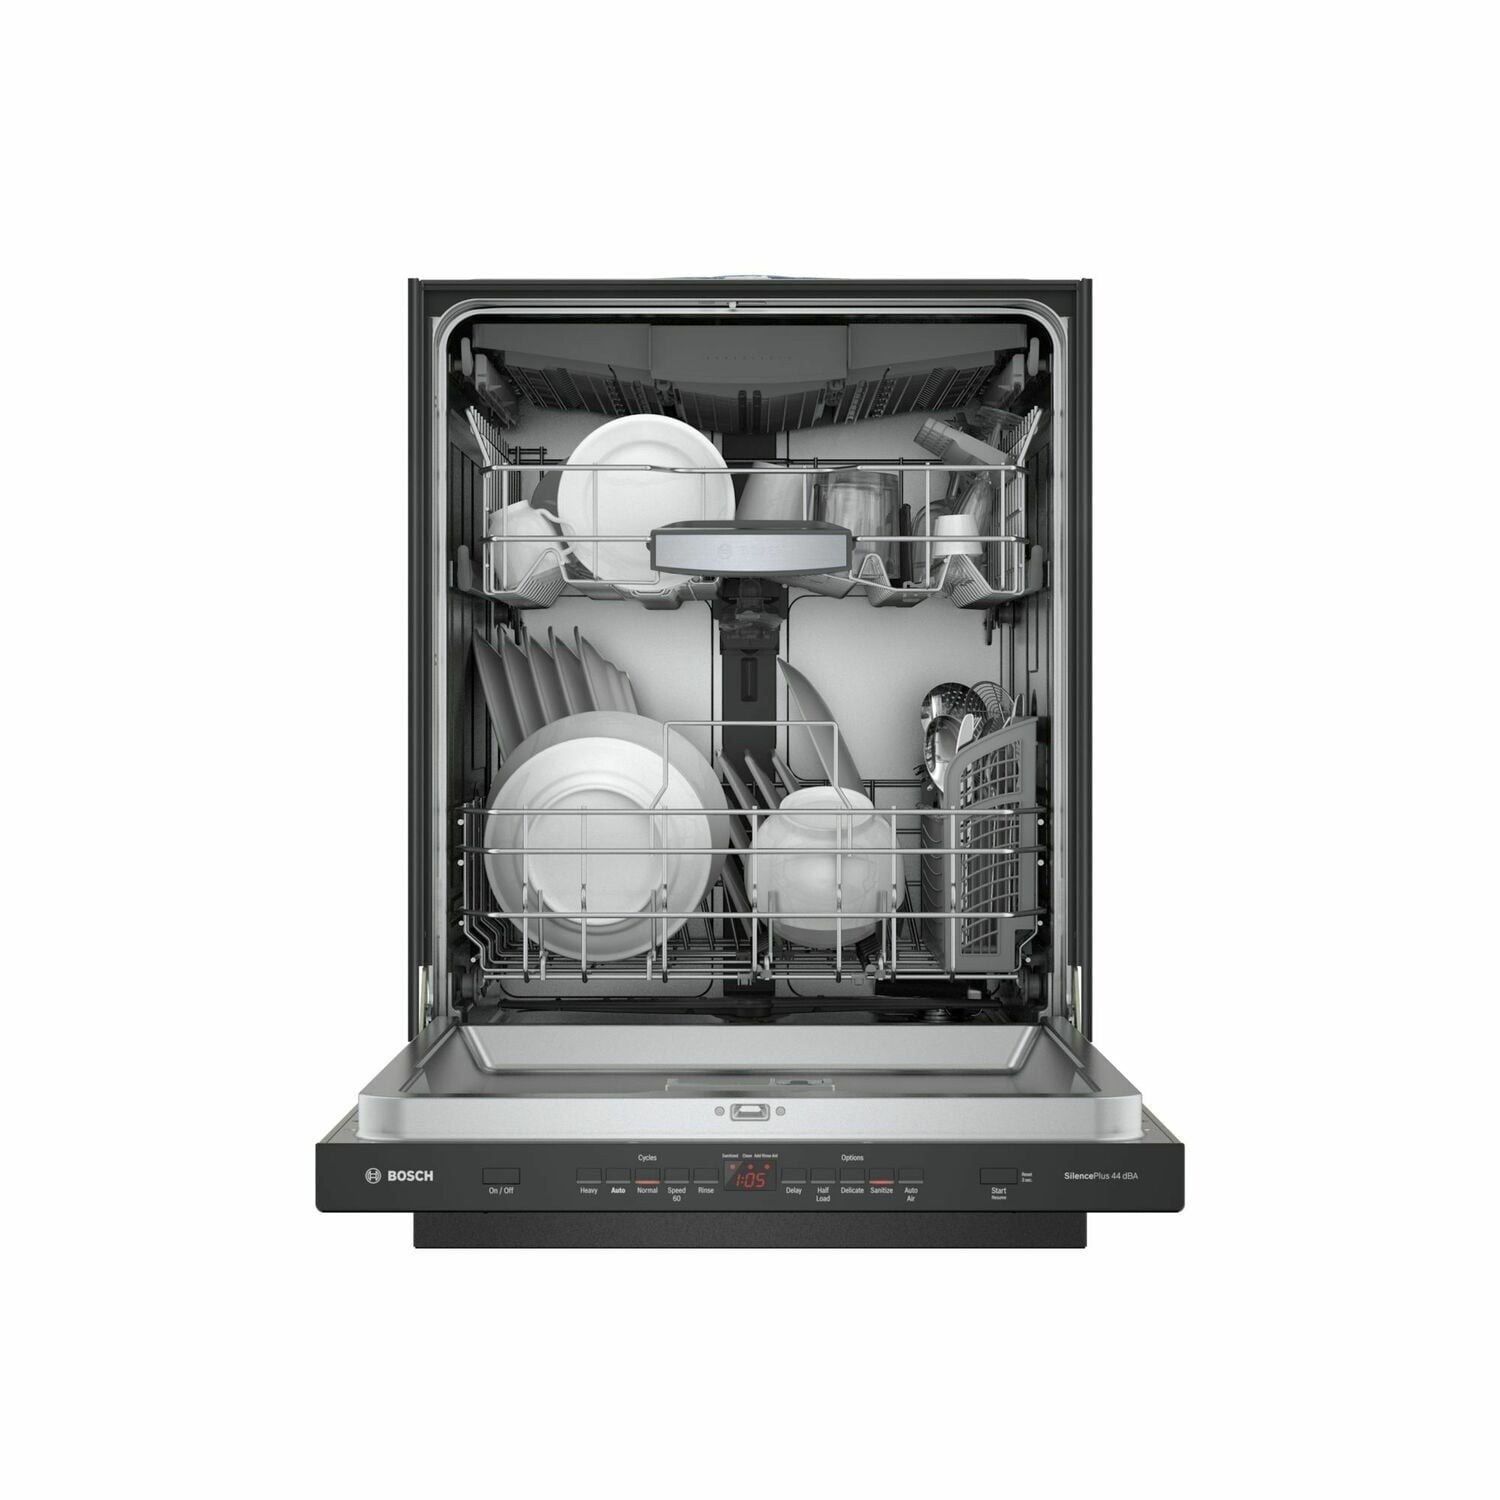 Load image into Gallery viewer, Bosch SHPM65Z56N 500 Series Dishwasher 24'' Black Shpm65Z56N